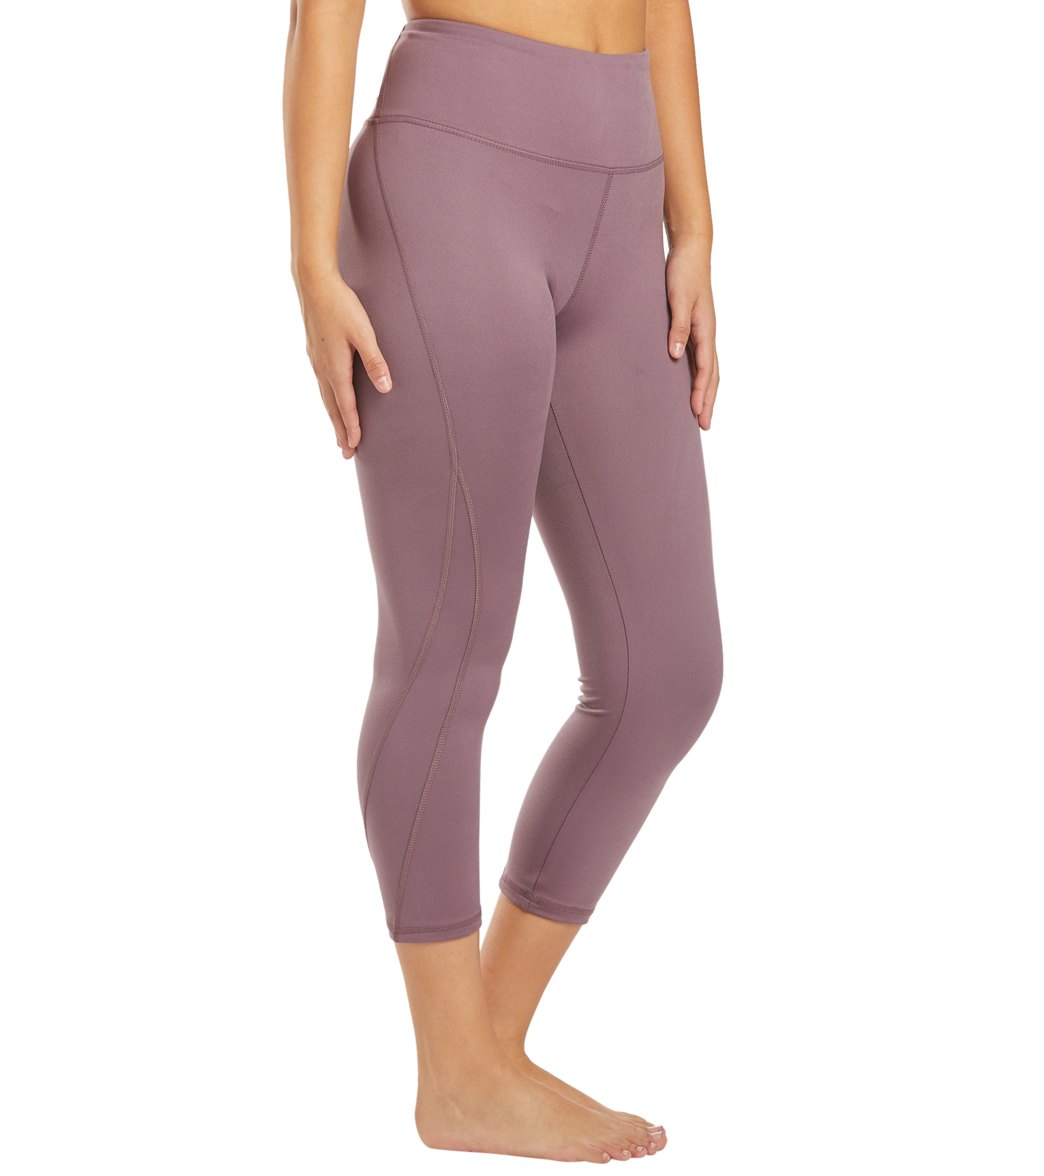 Balance Collection Briar High Waisted Yoga Capri Pants - Black Plum Cotton